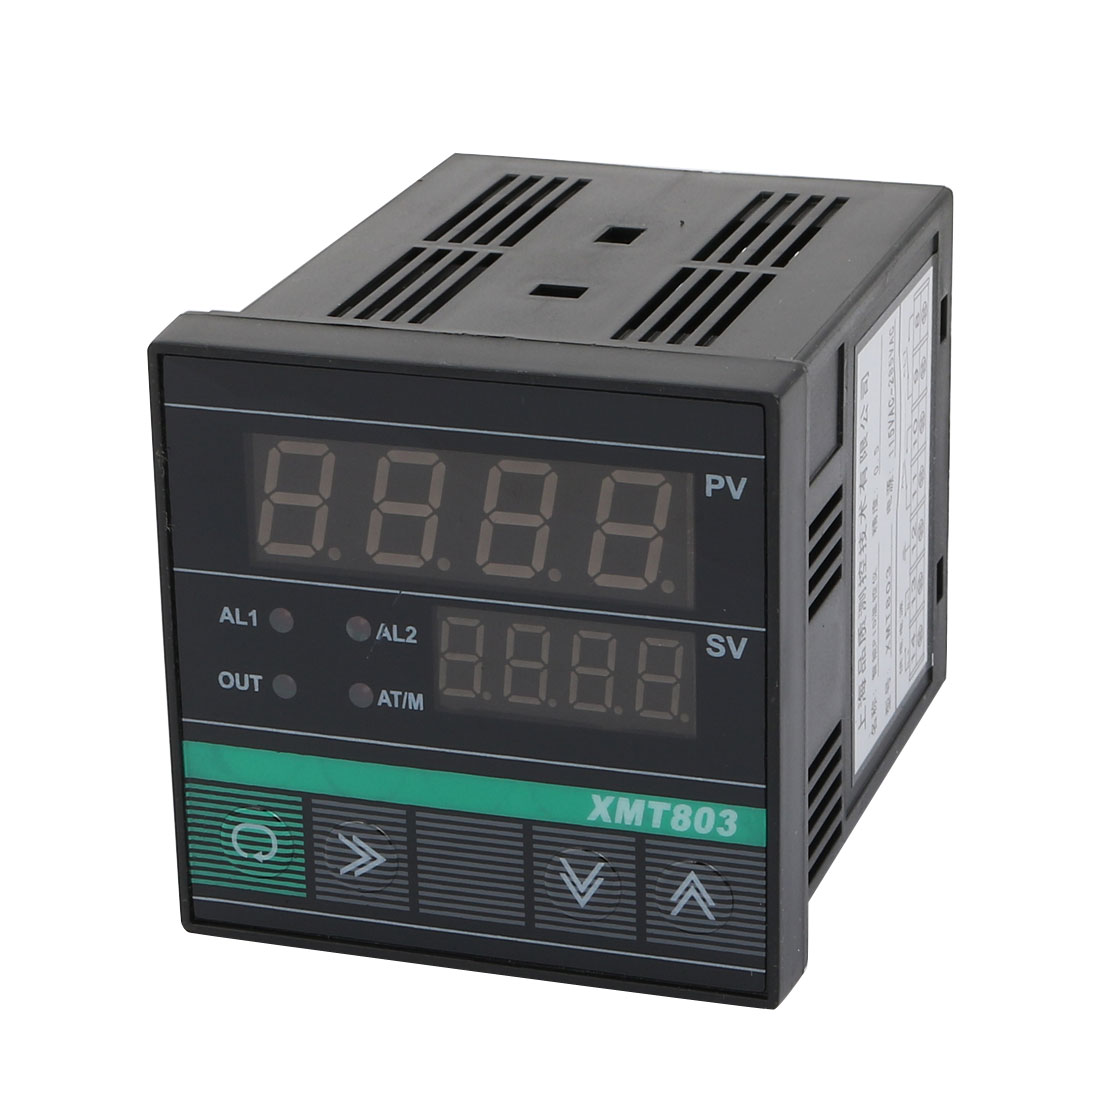 PV SV Display Alarm PID Digital Temperature Controller Meter XMT-803